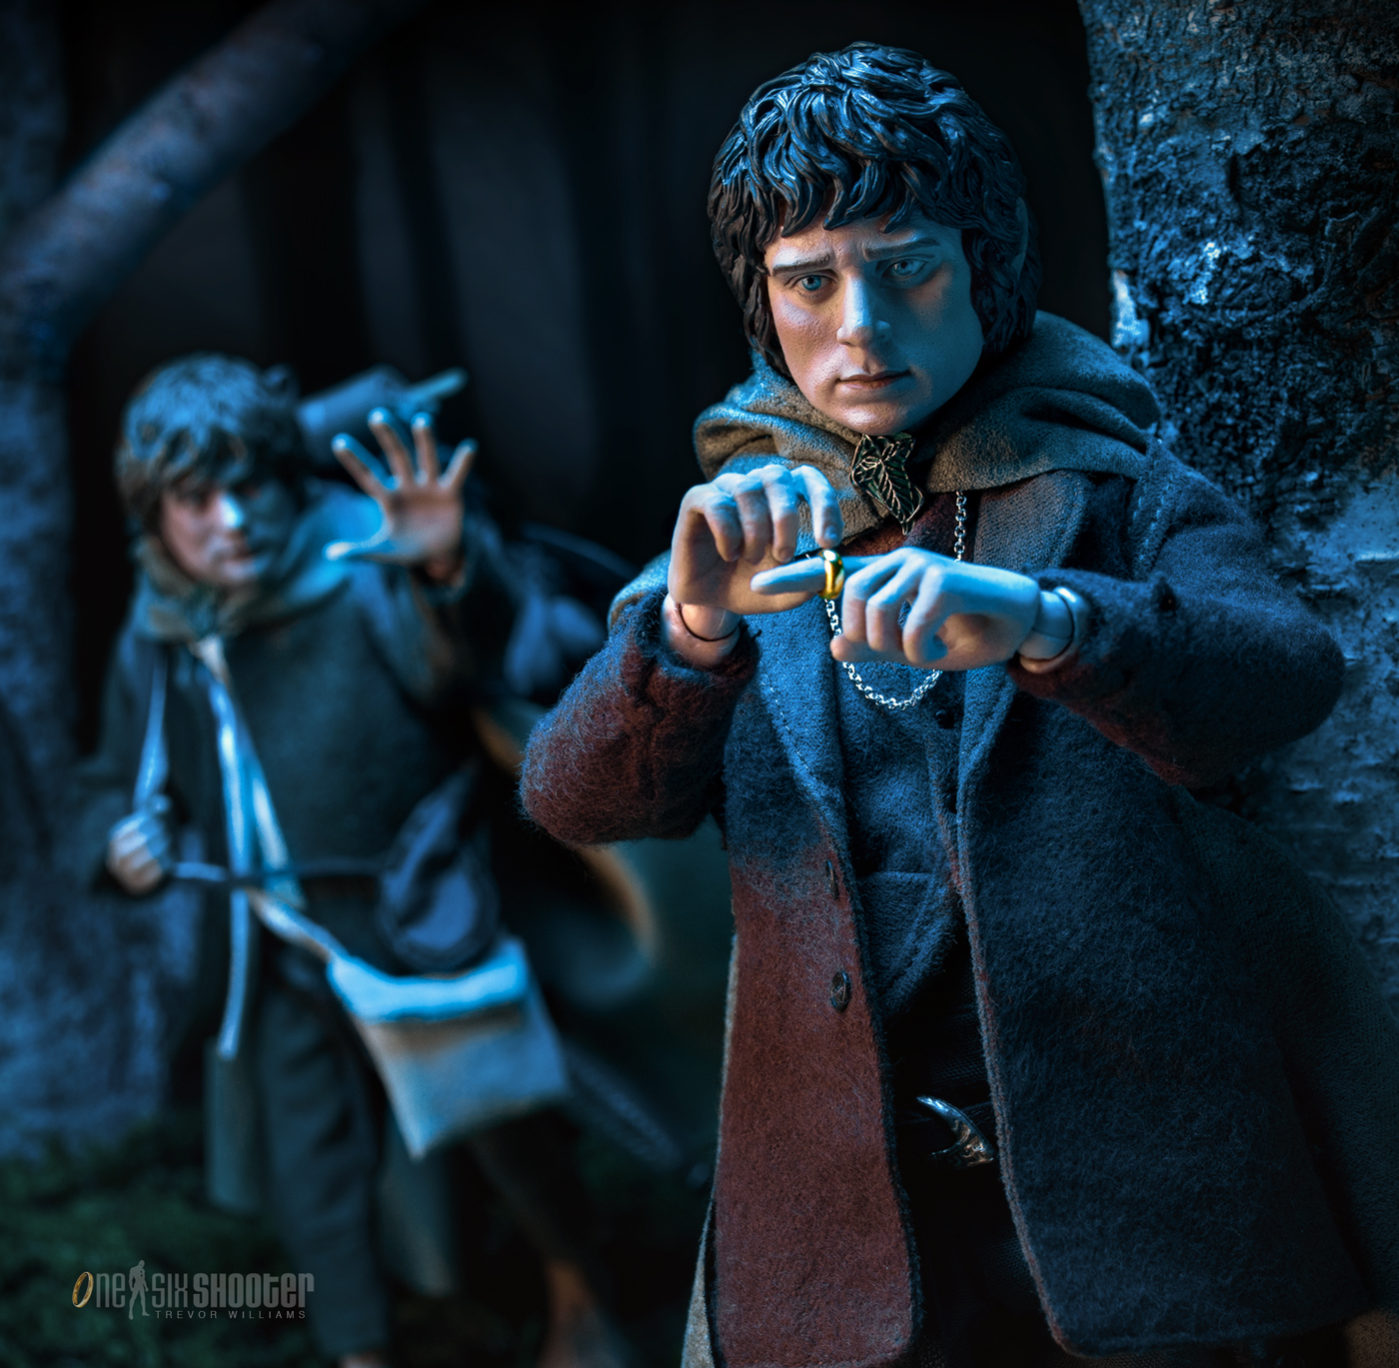 Samwise Gamgee and Frodo Baggins